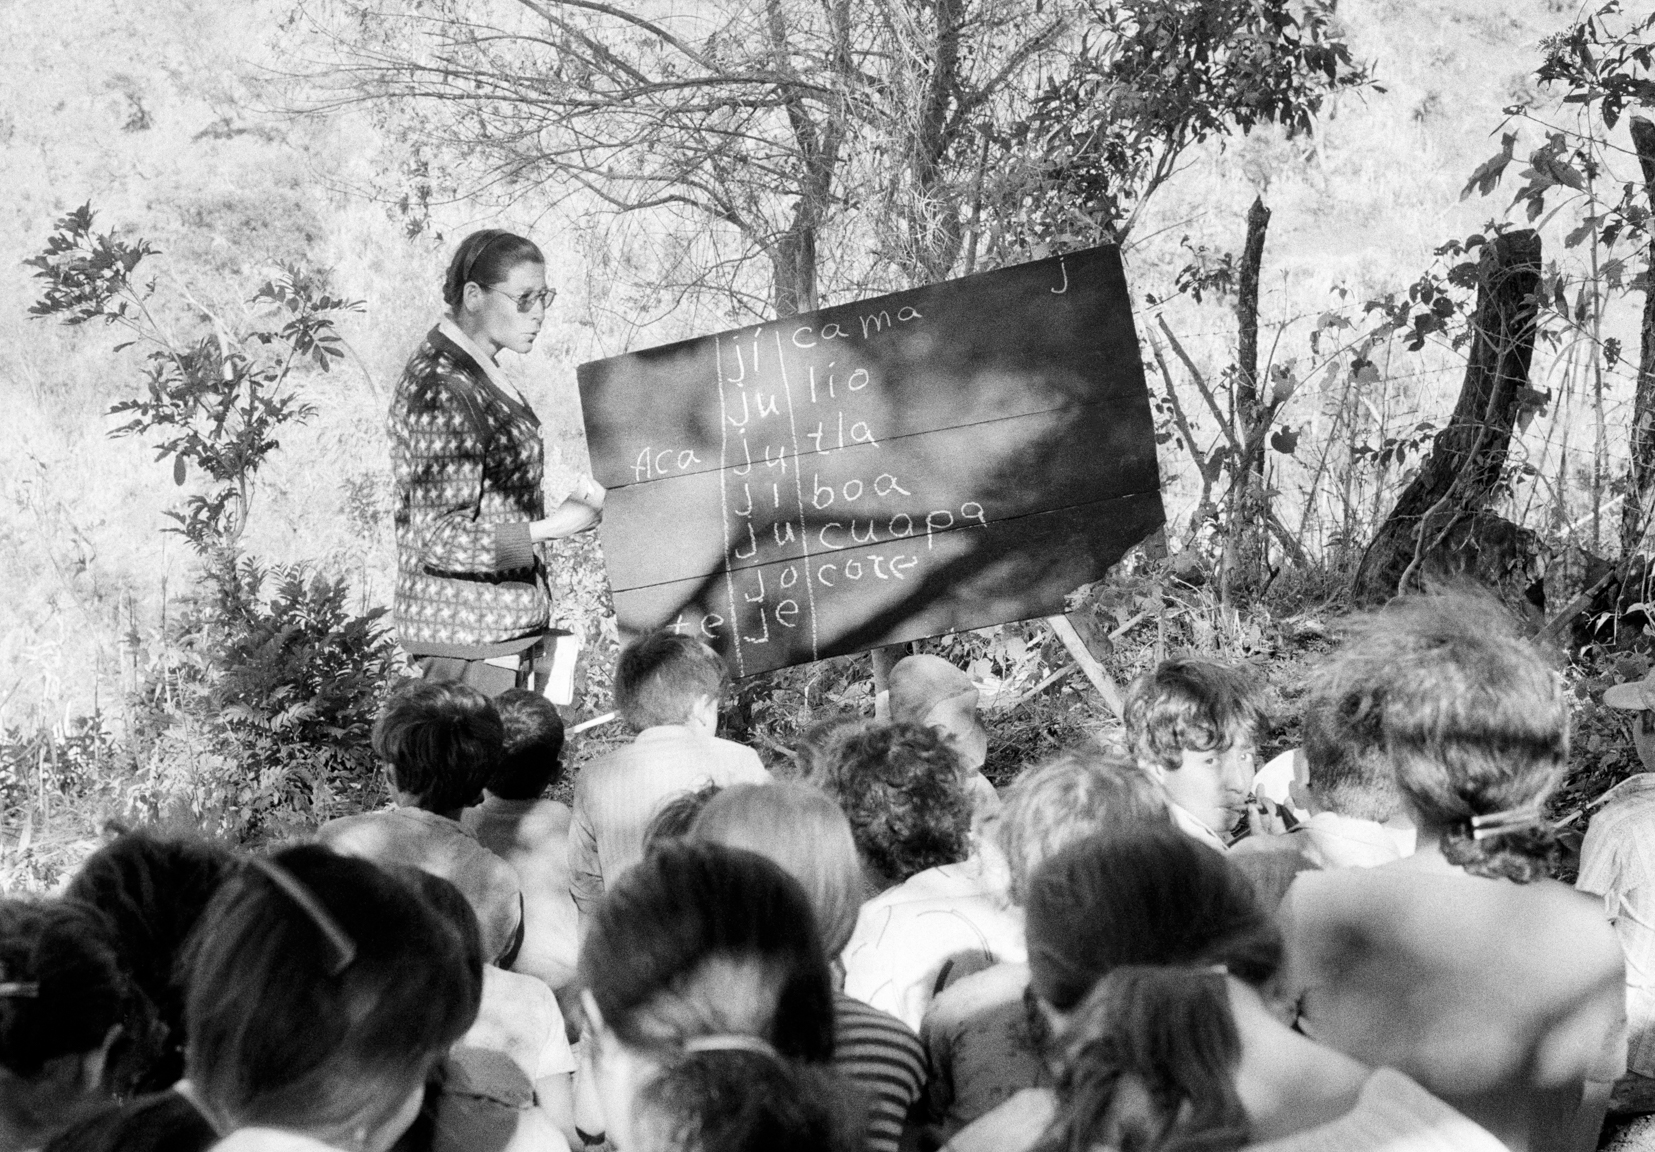 In territory held by Popular Liberation of Forces (FPL) guerrillas, students attend an outdoor grammar class February 22, 1981 near Santa Anita, Chalatenango department, El Salvador. The children had been displaced by the ongoing conflict between guerrilla factions and government forces. At the time, the country was engaged in what became a 13-year Civil War between successive right-wing governments (backed by the US and others) and various armed guerrilla factions that eventually claimed over 75,000 lives before ending in 1992.